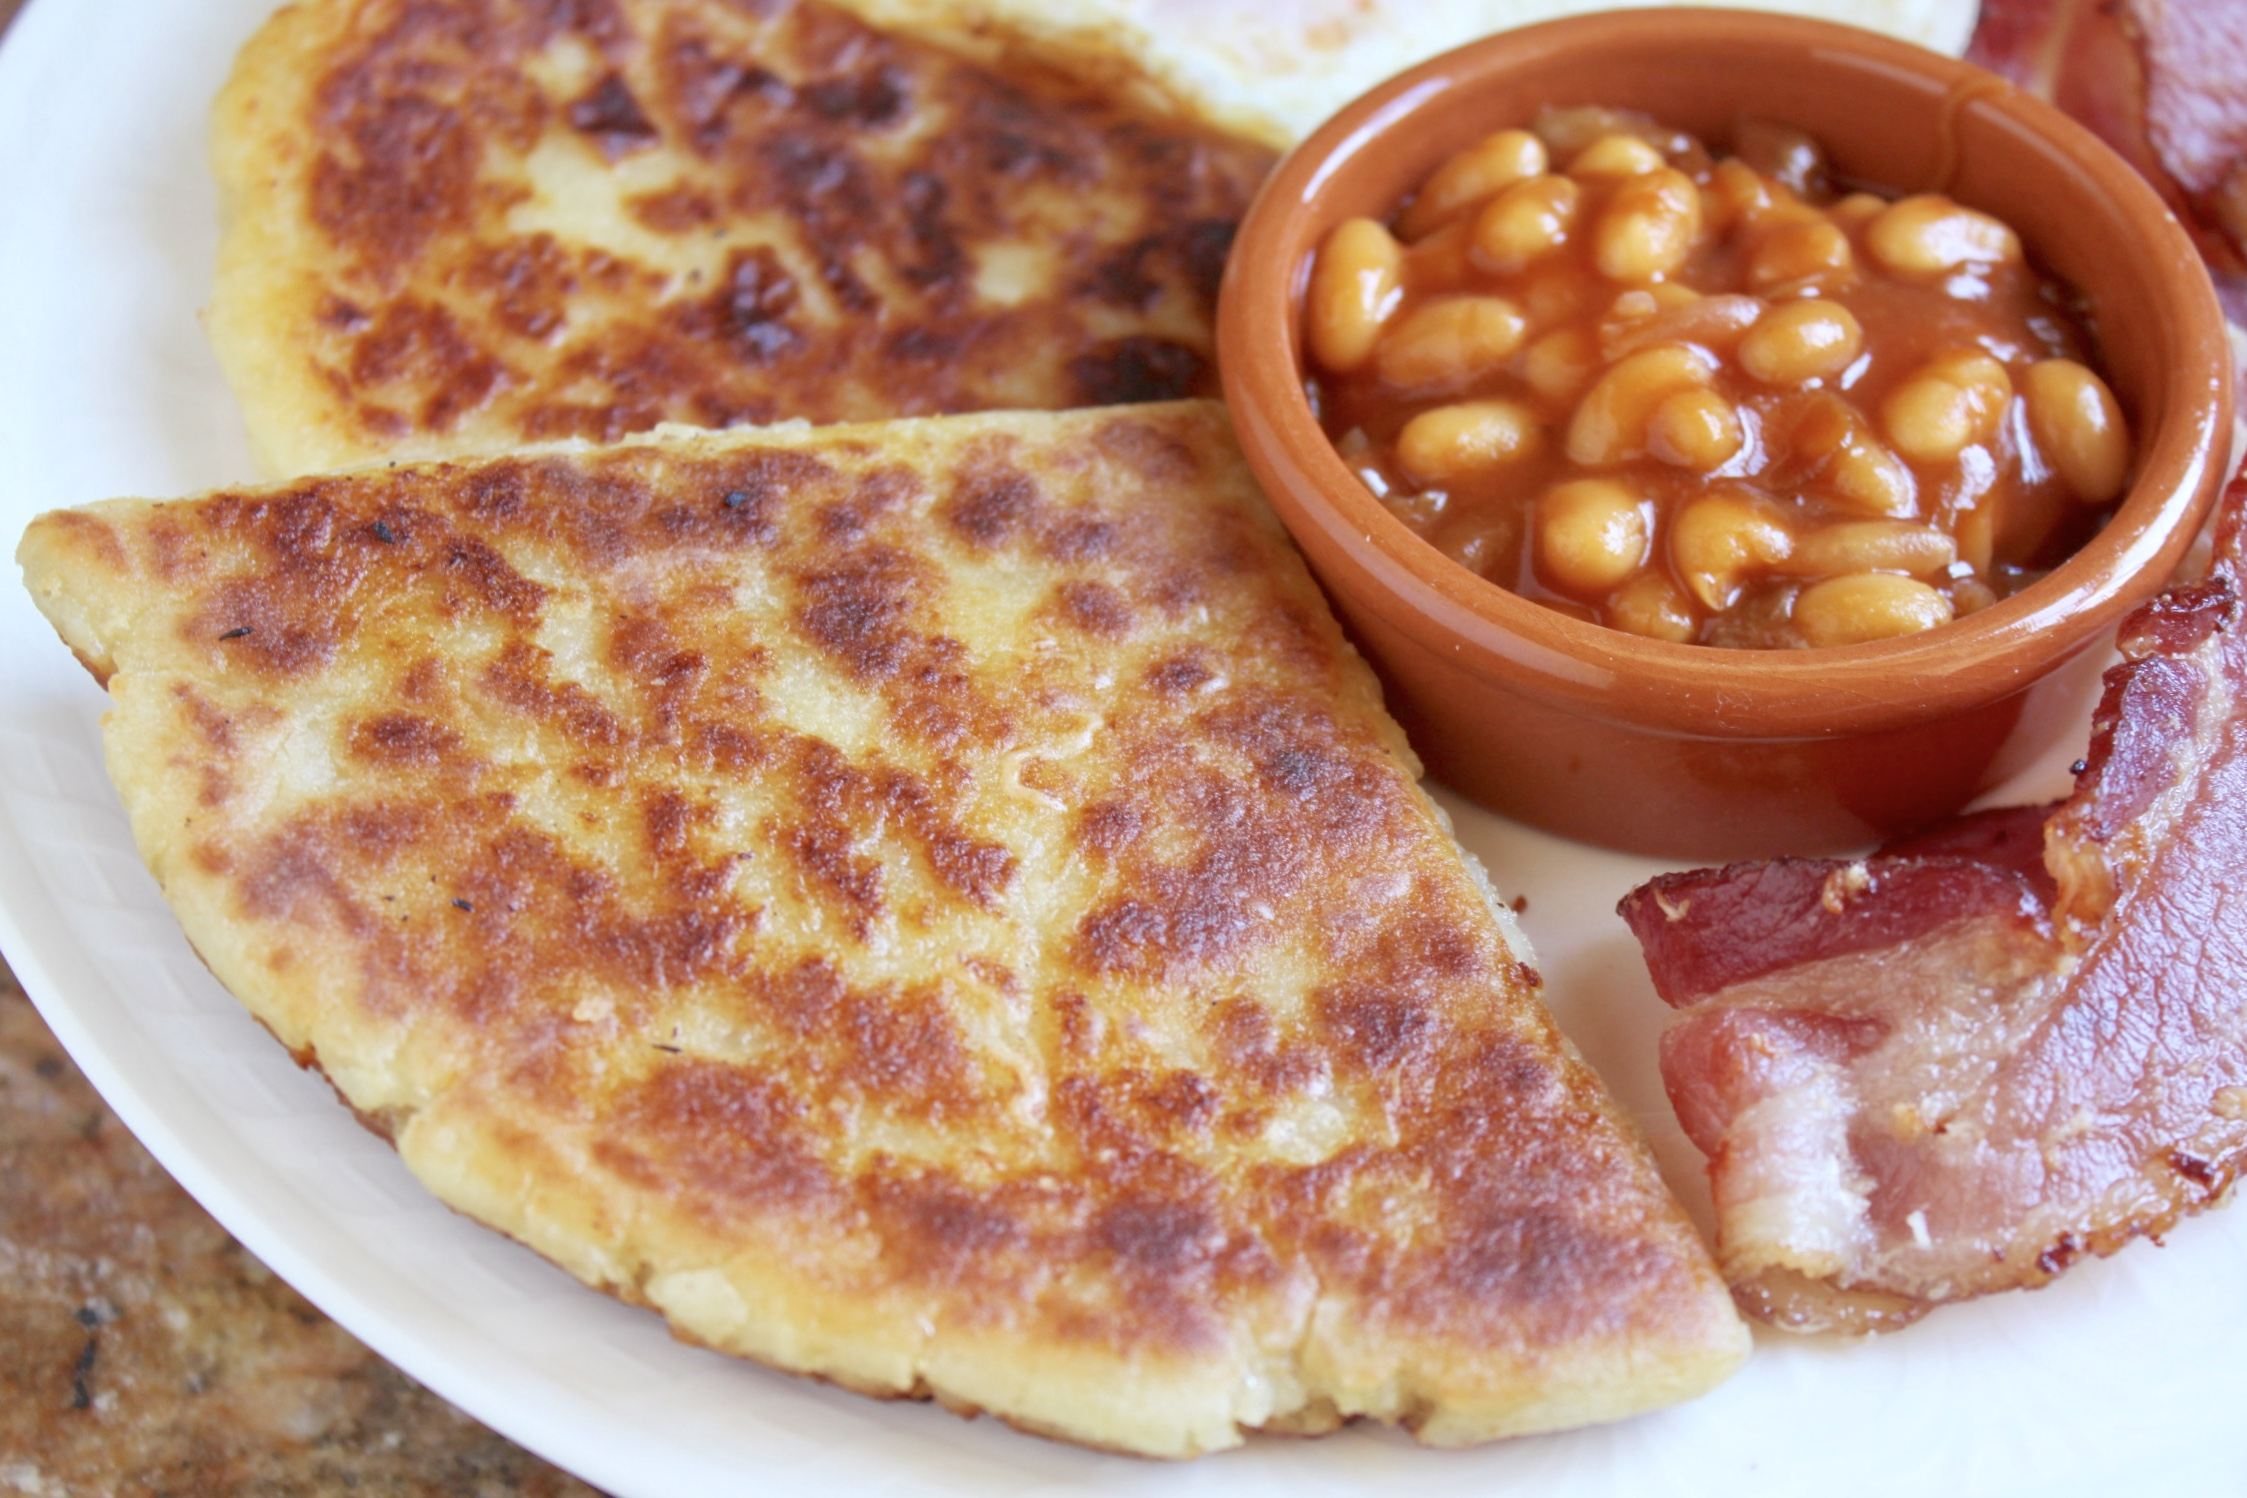 potato bread on plate with beans